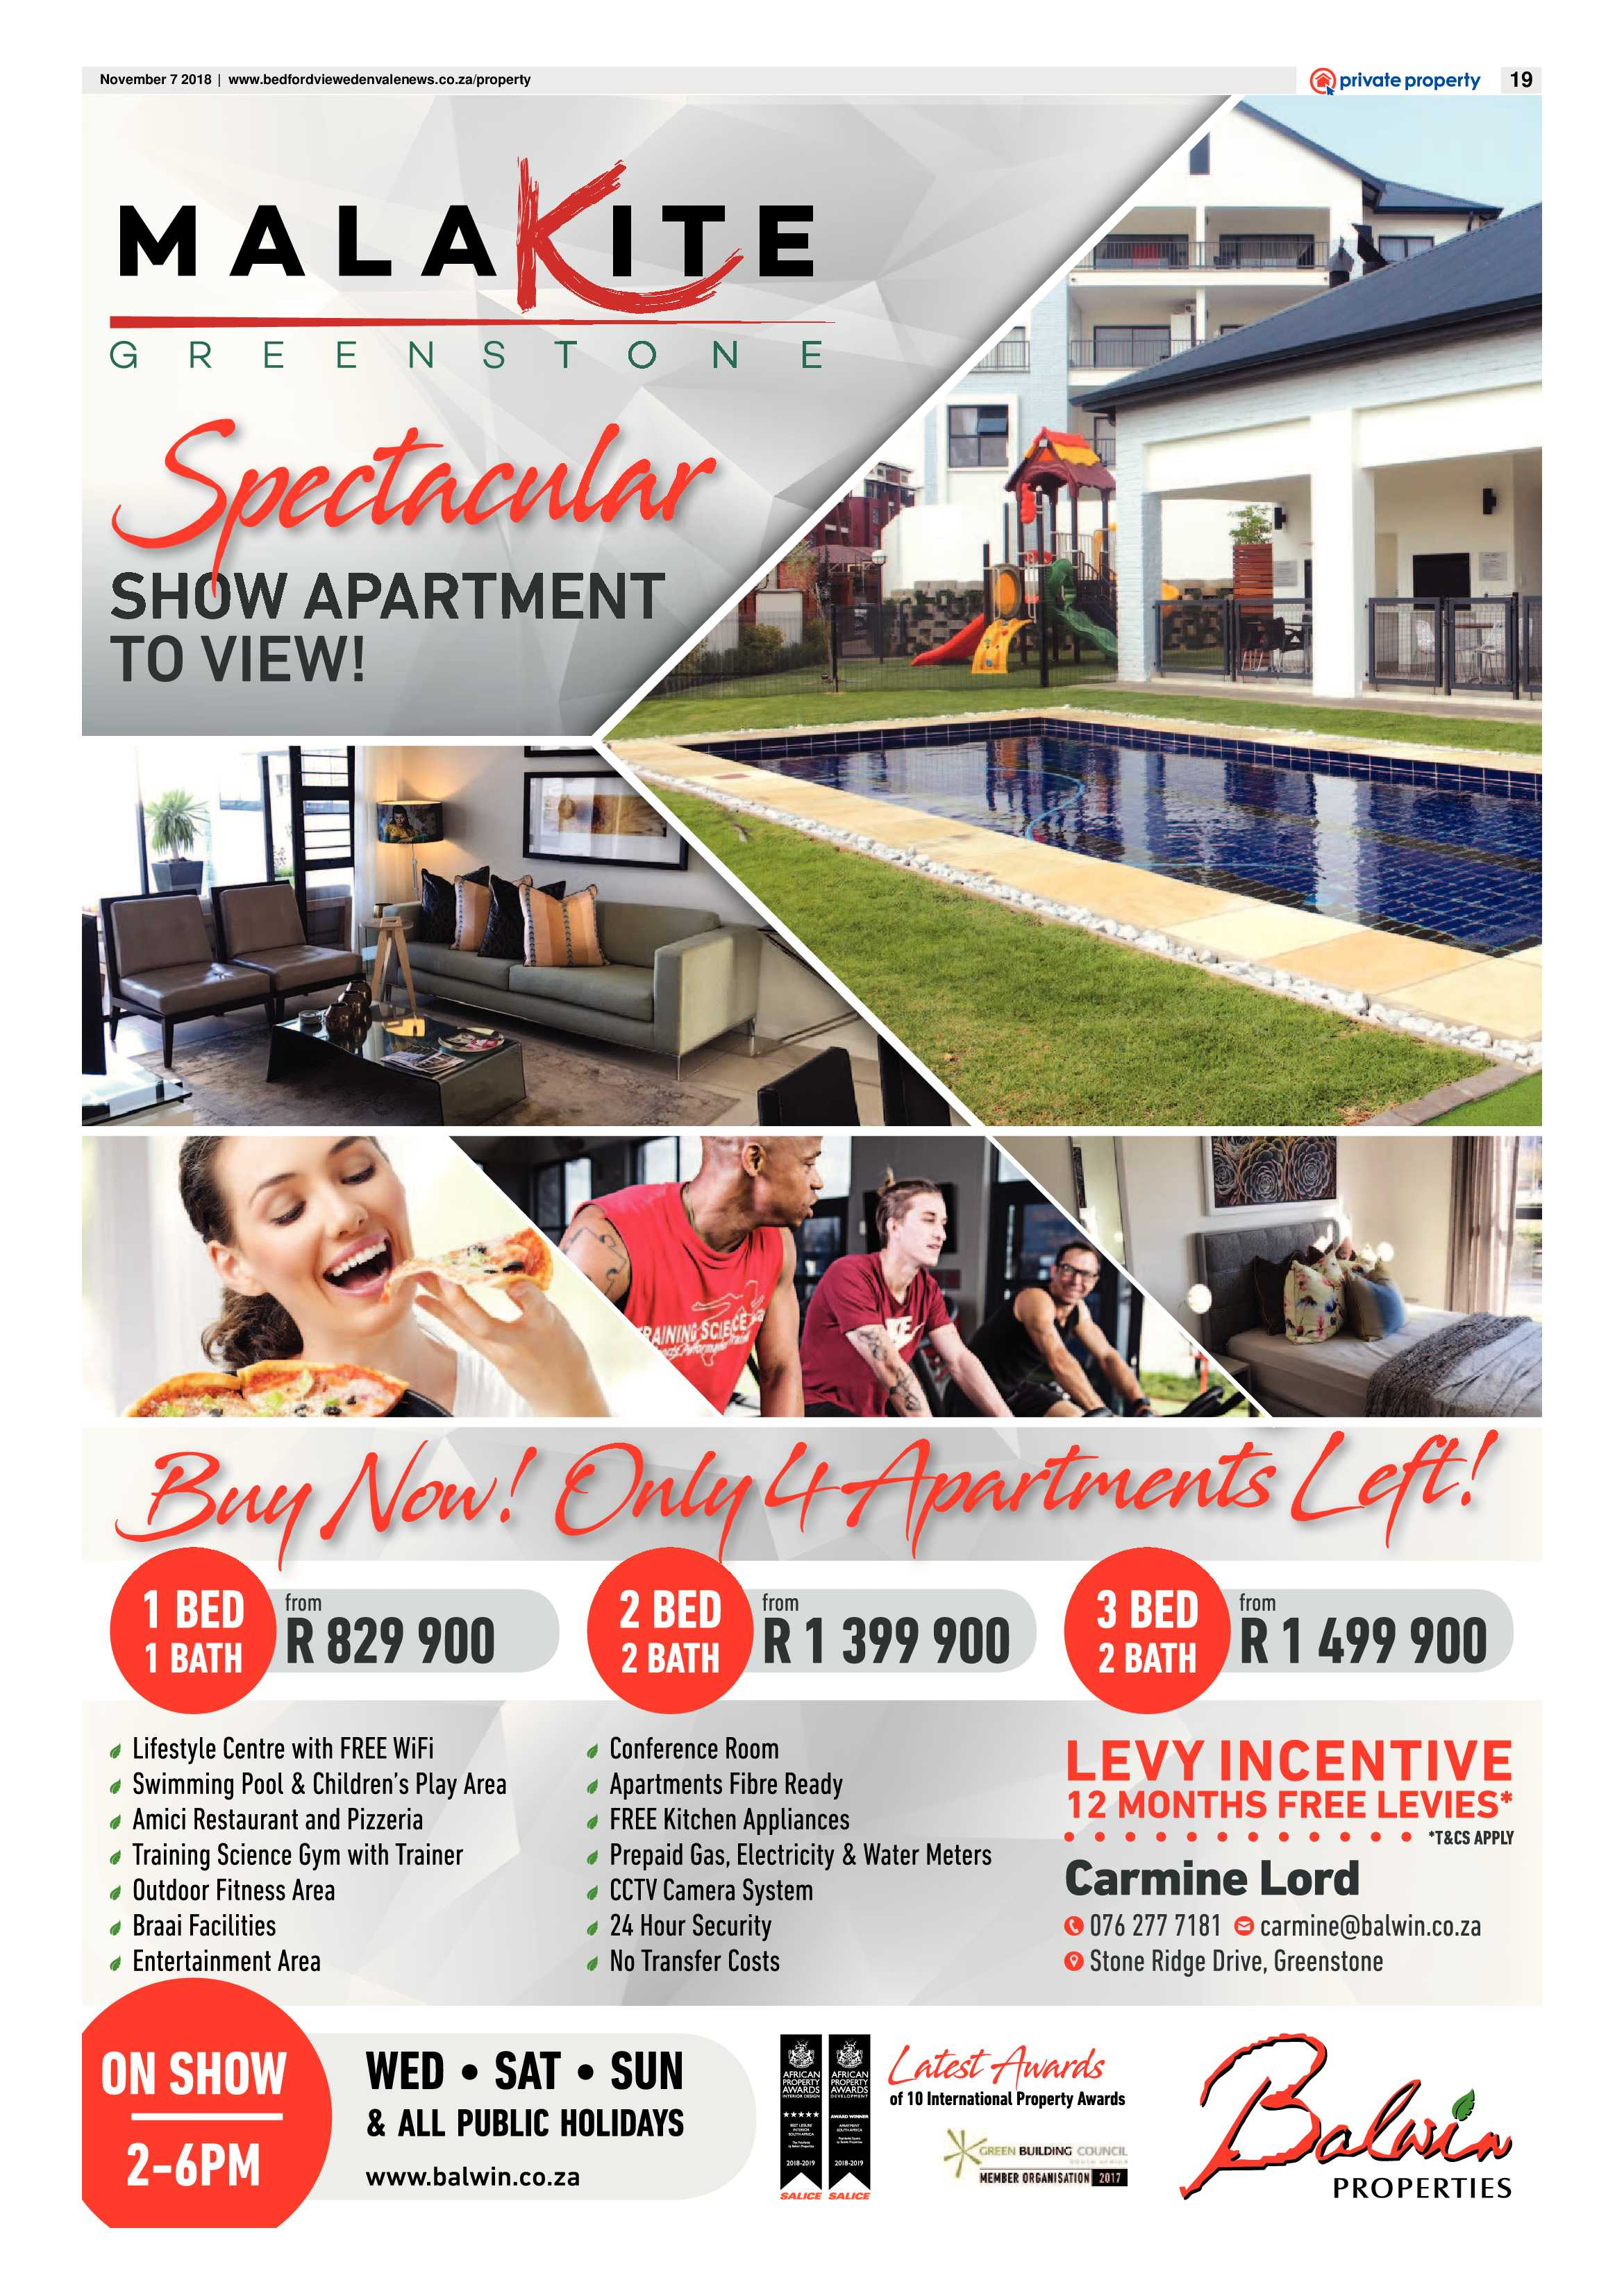 bedfordview-edenvale-news-07-november-2018-epapers-page-19